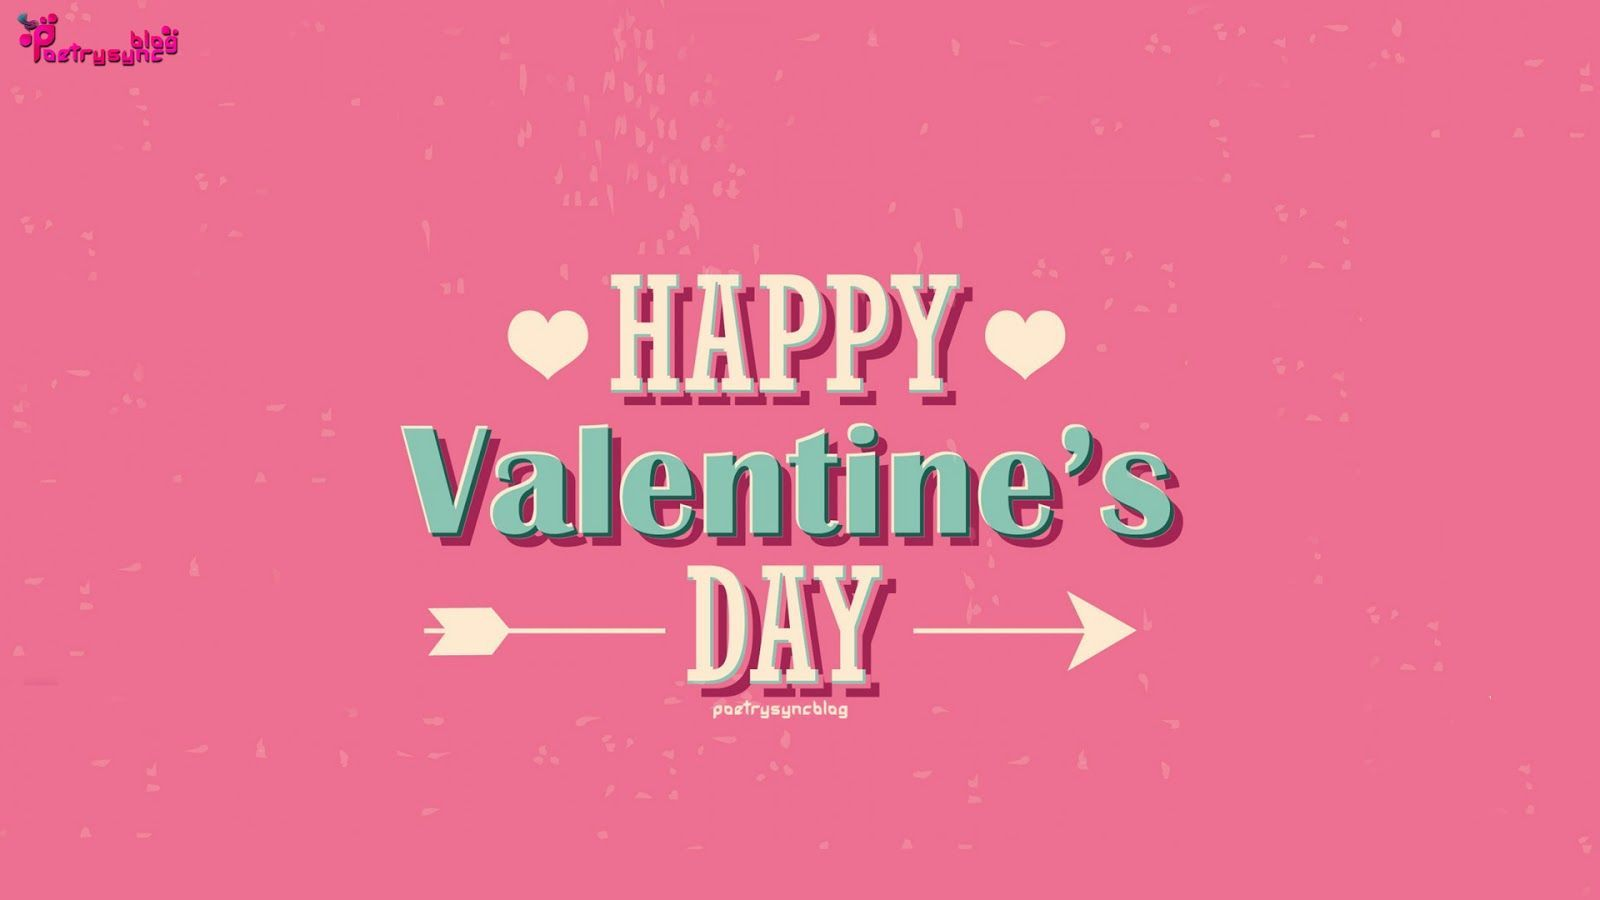 Cute Valentine's Day Wallpapers